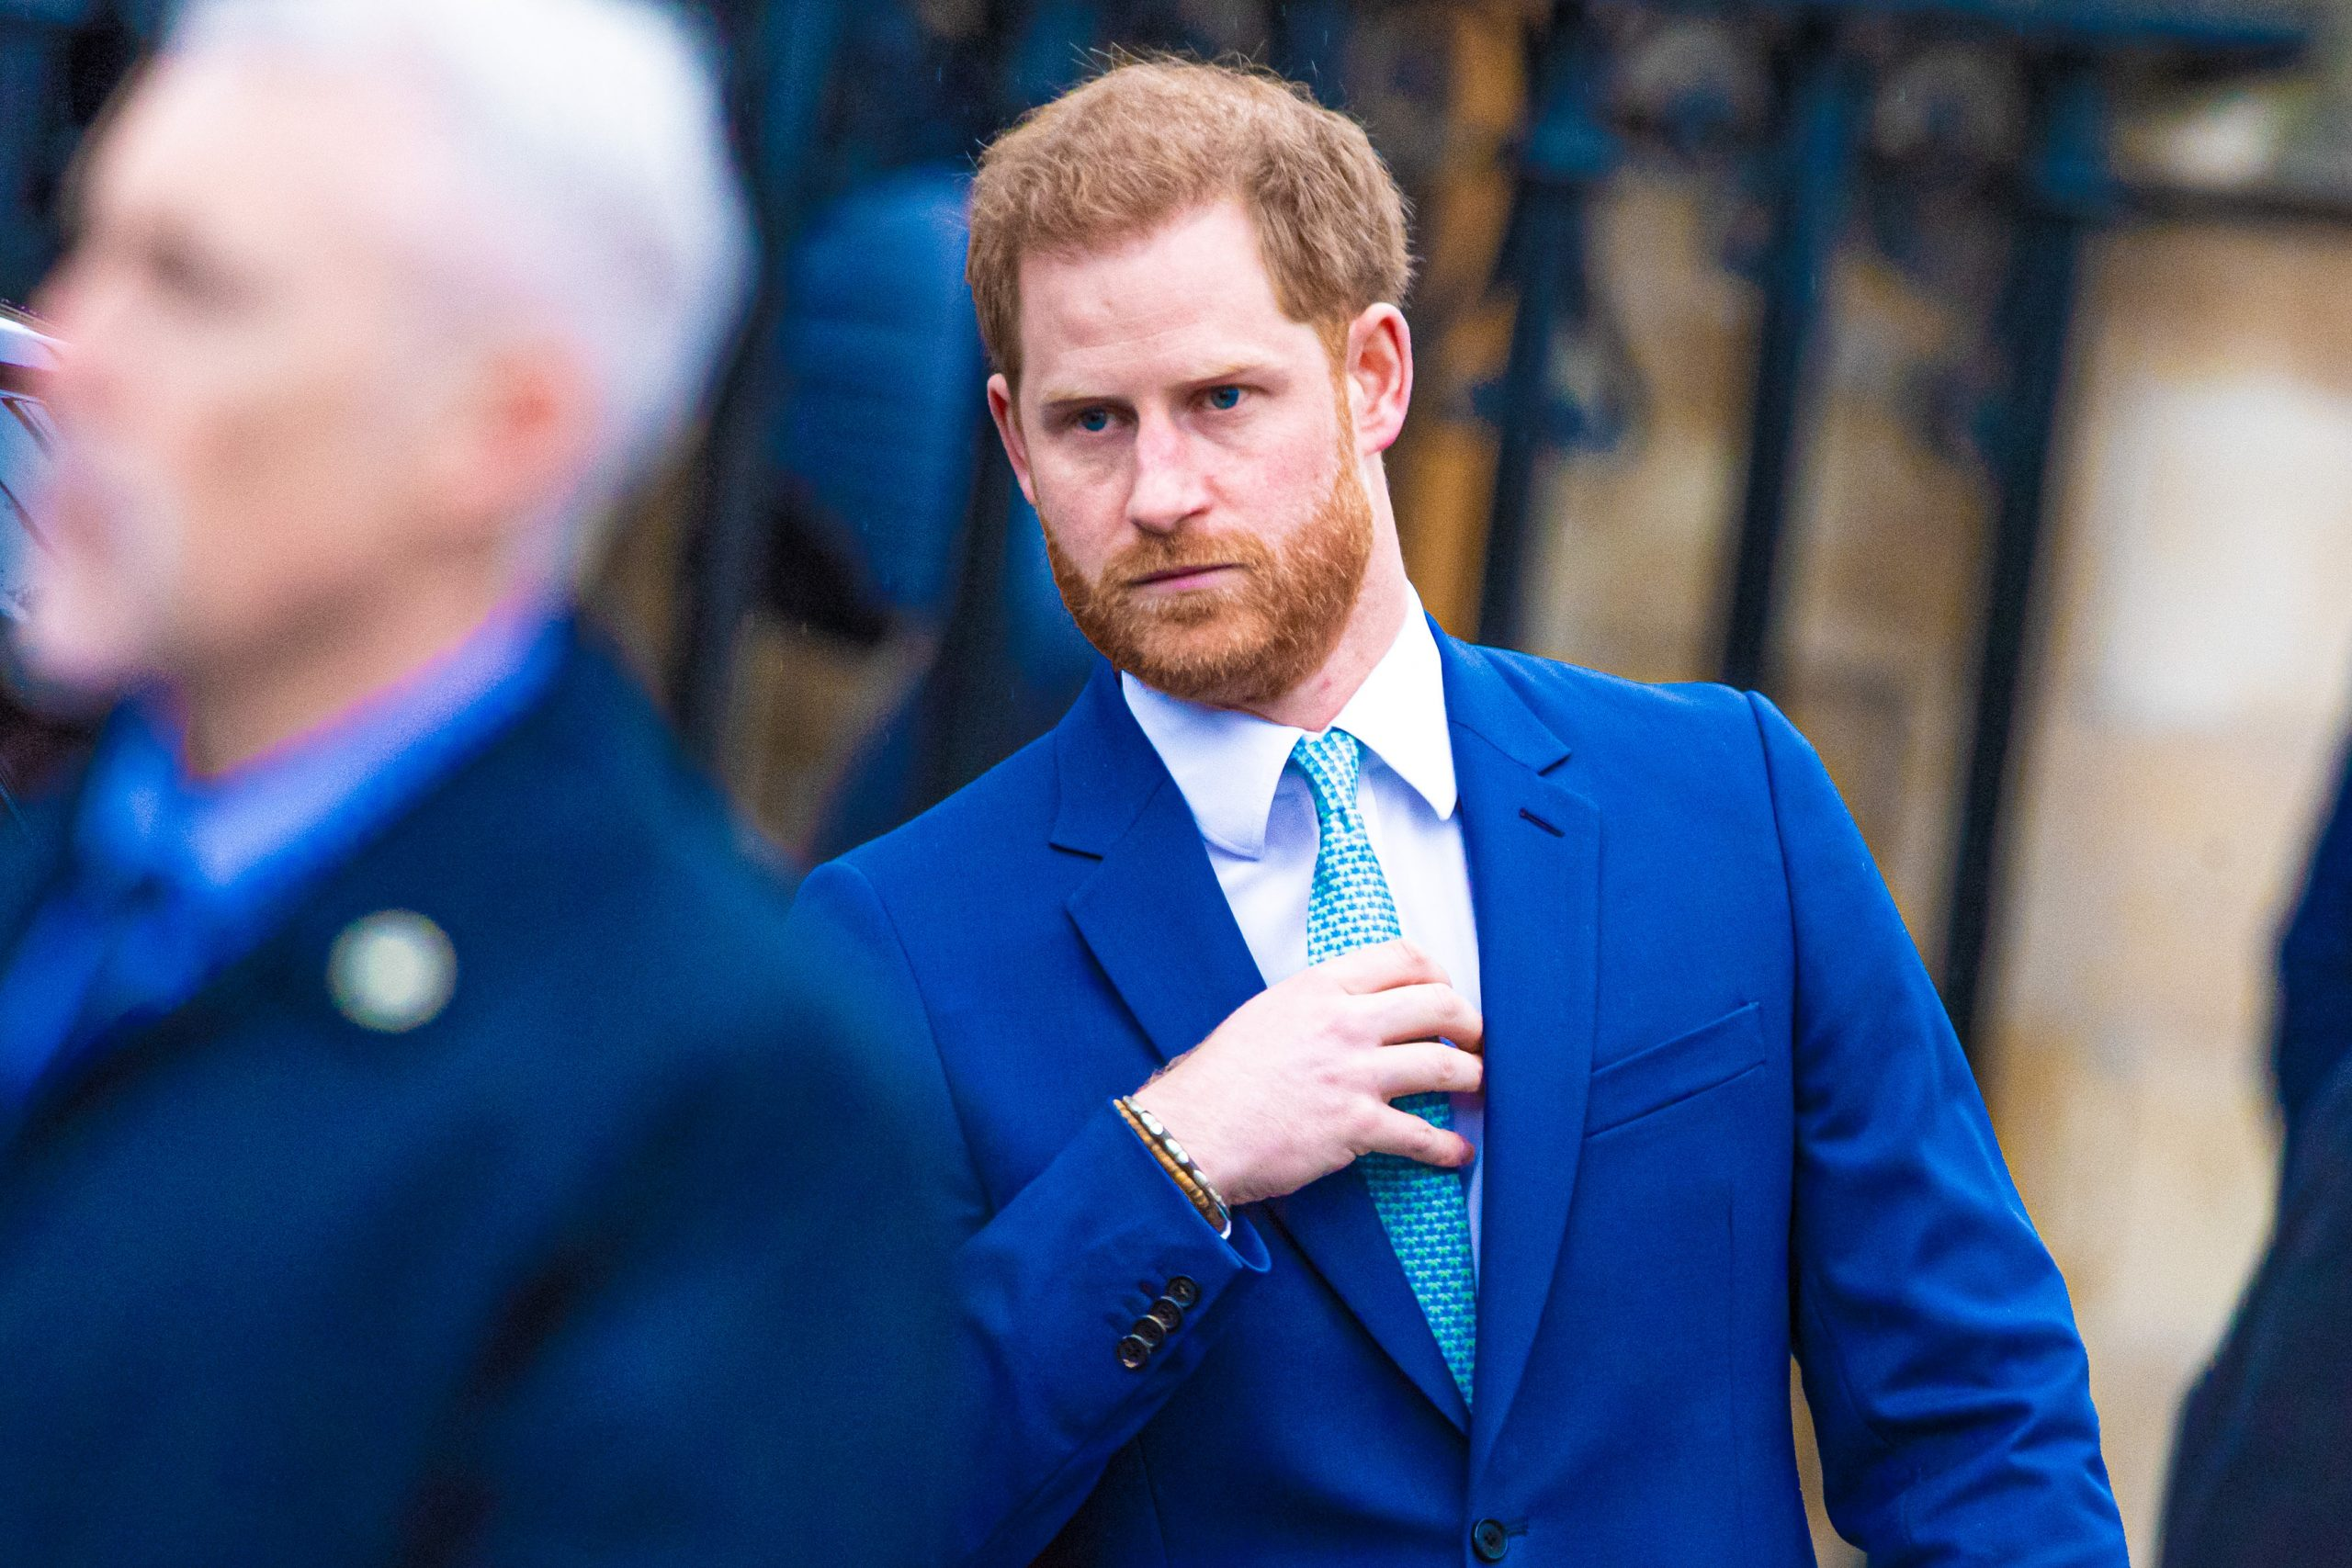 Prince Harry reportedly hinted at plans to quit royal life last year